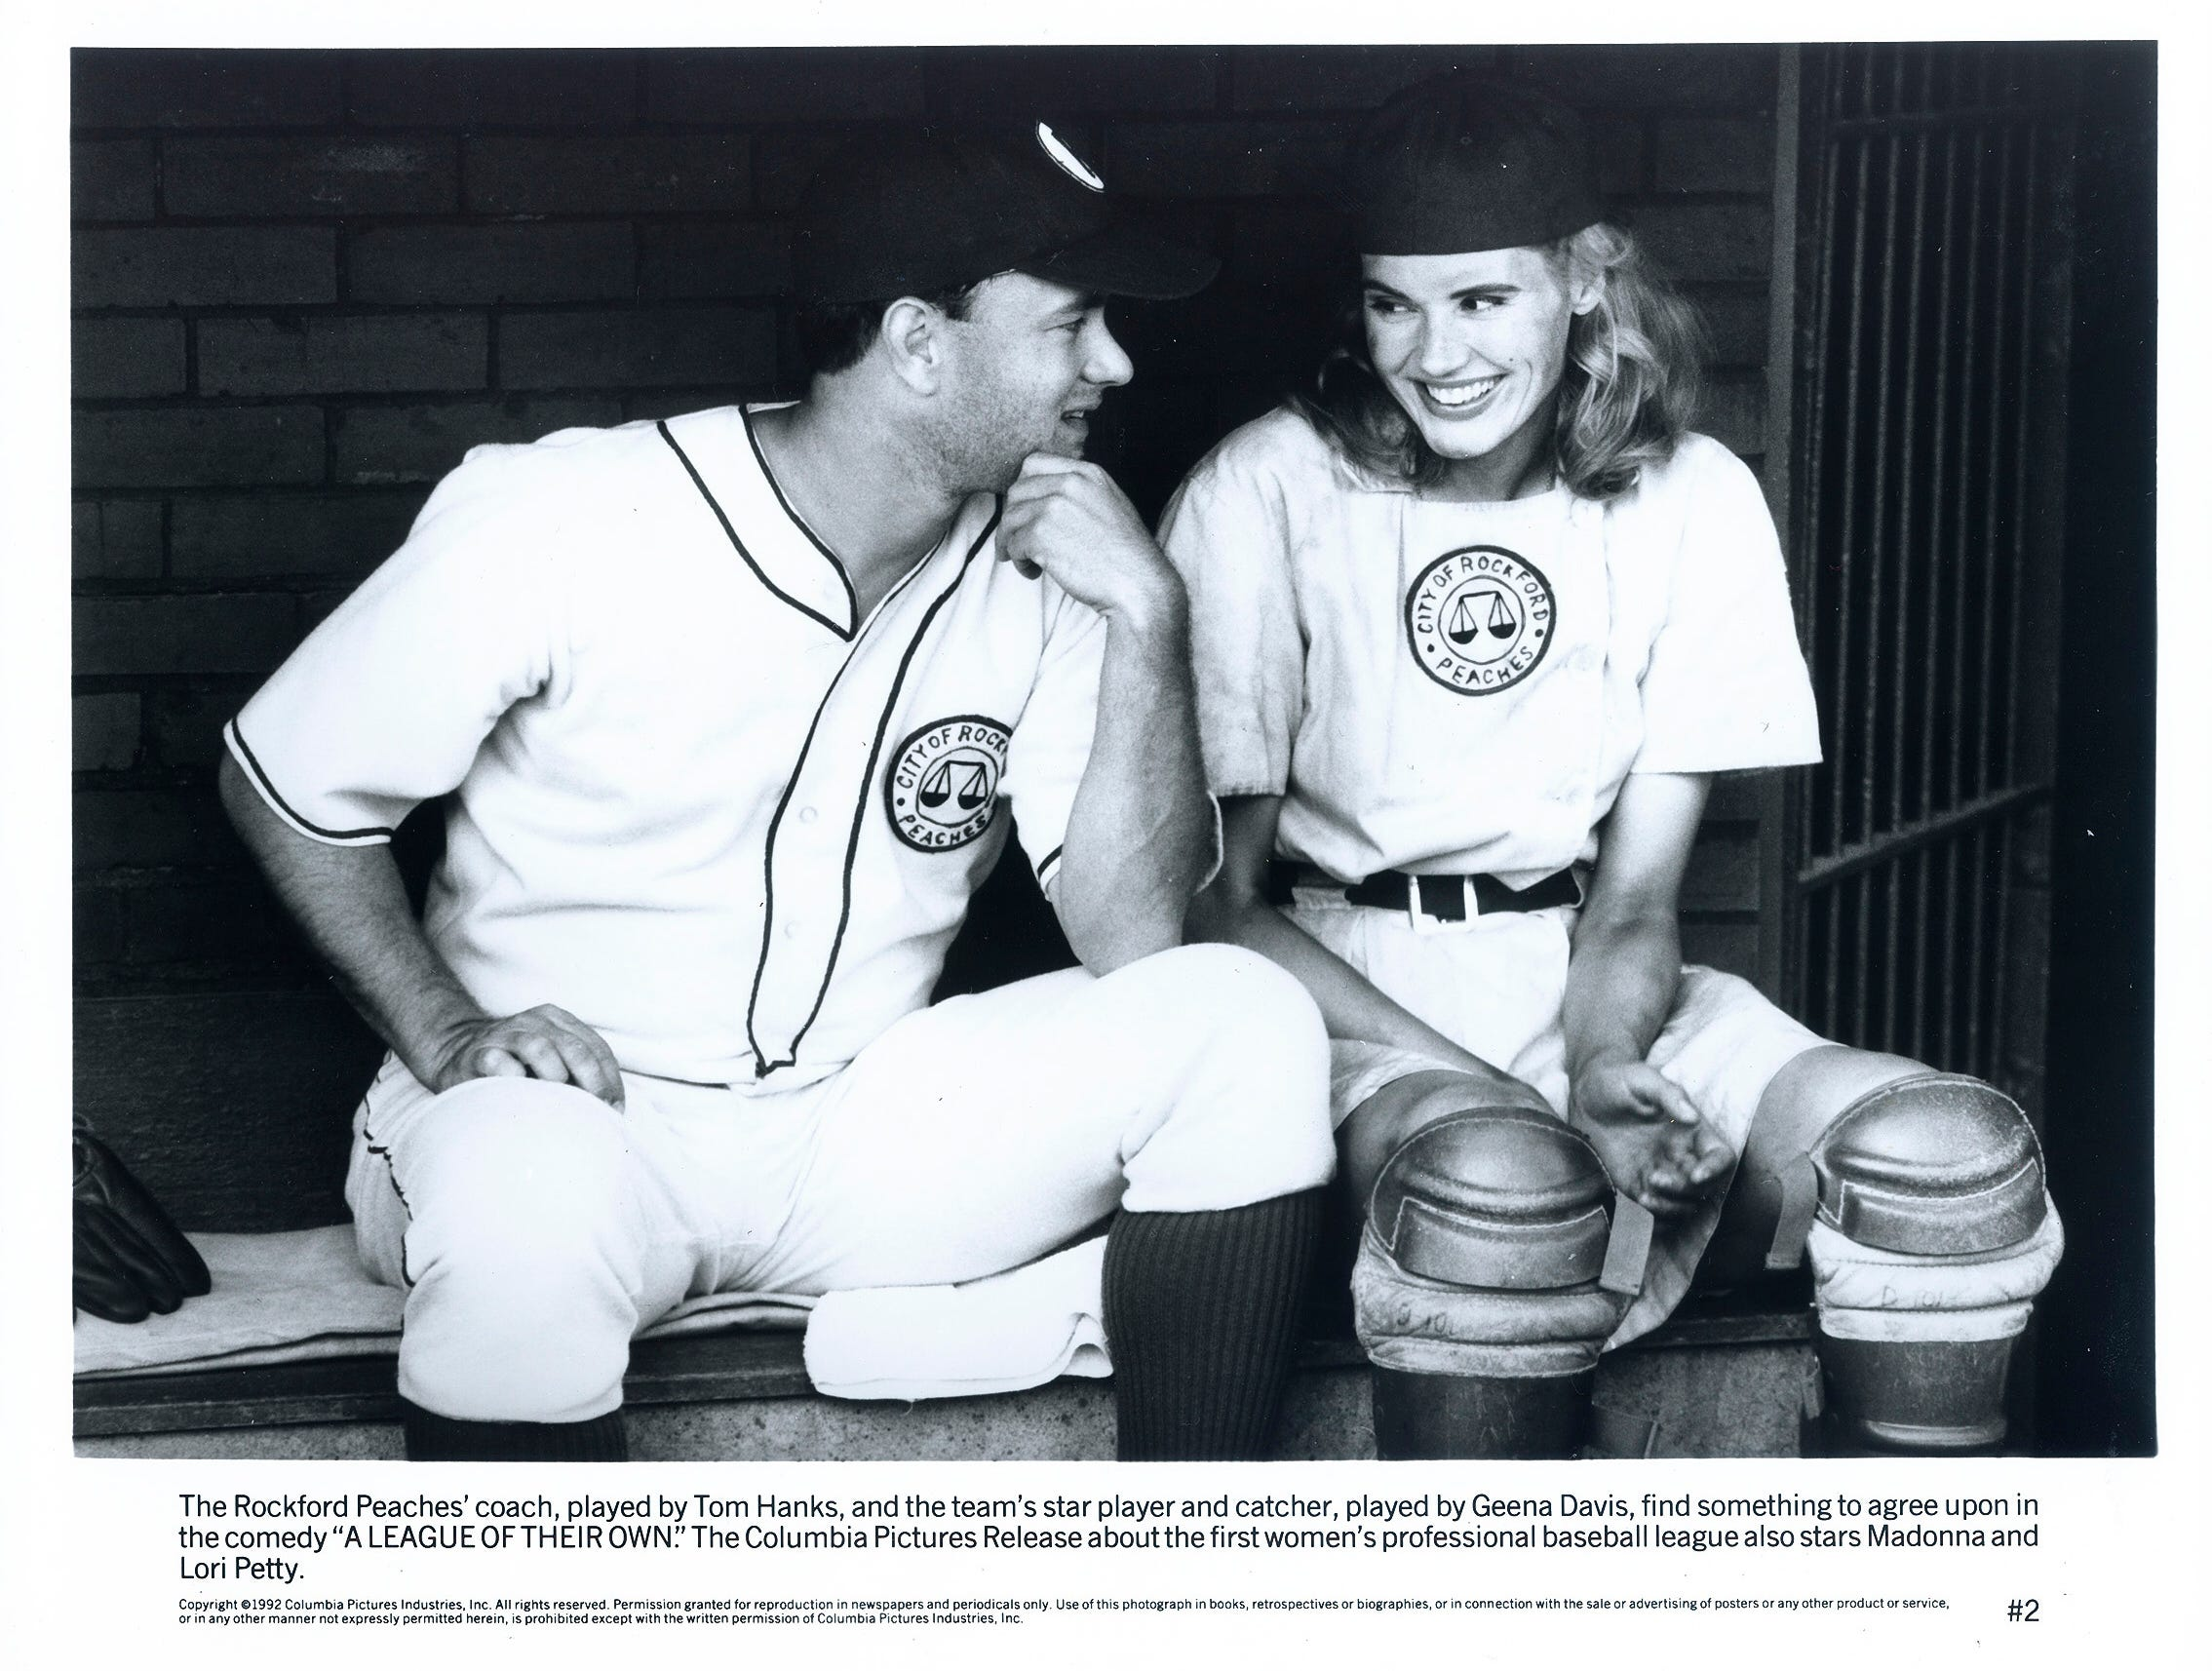 "The Rockford Peaches' coach, played by tom Hanks and the team's star player and catcher, played by Geena Davis, find something to agree upon in the comedy ""A League of Their Own."""